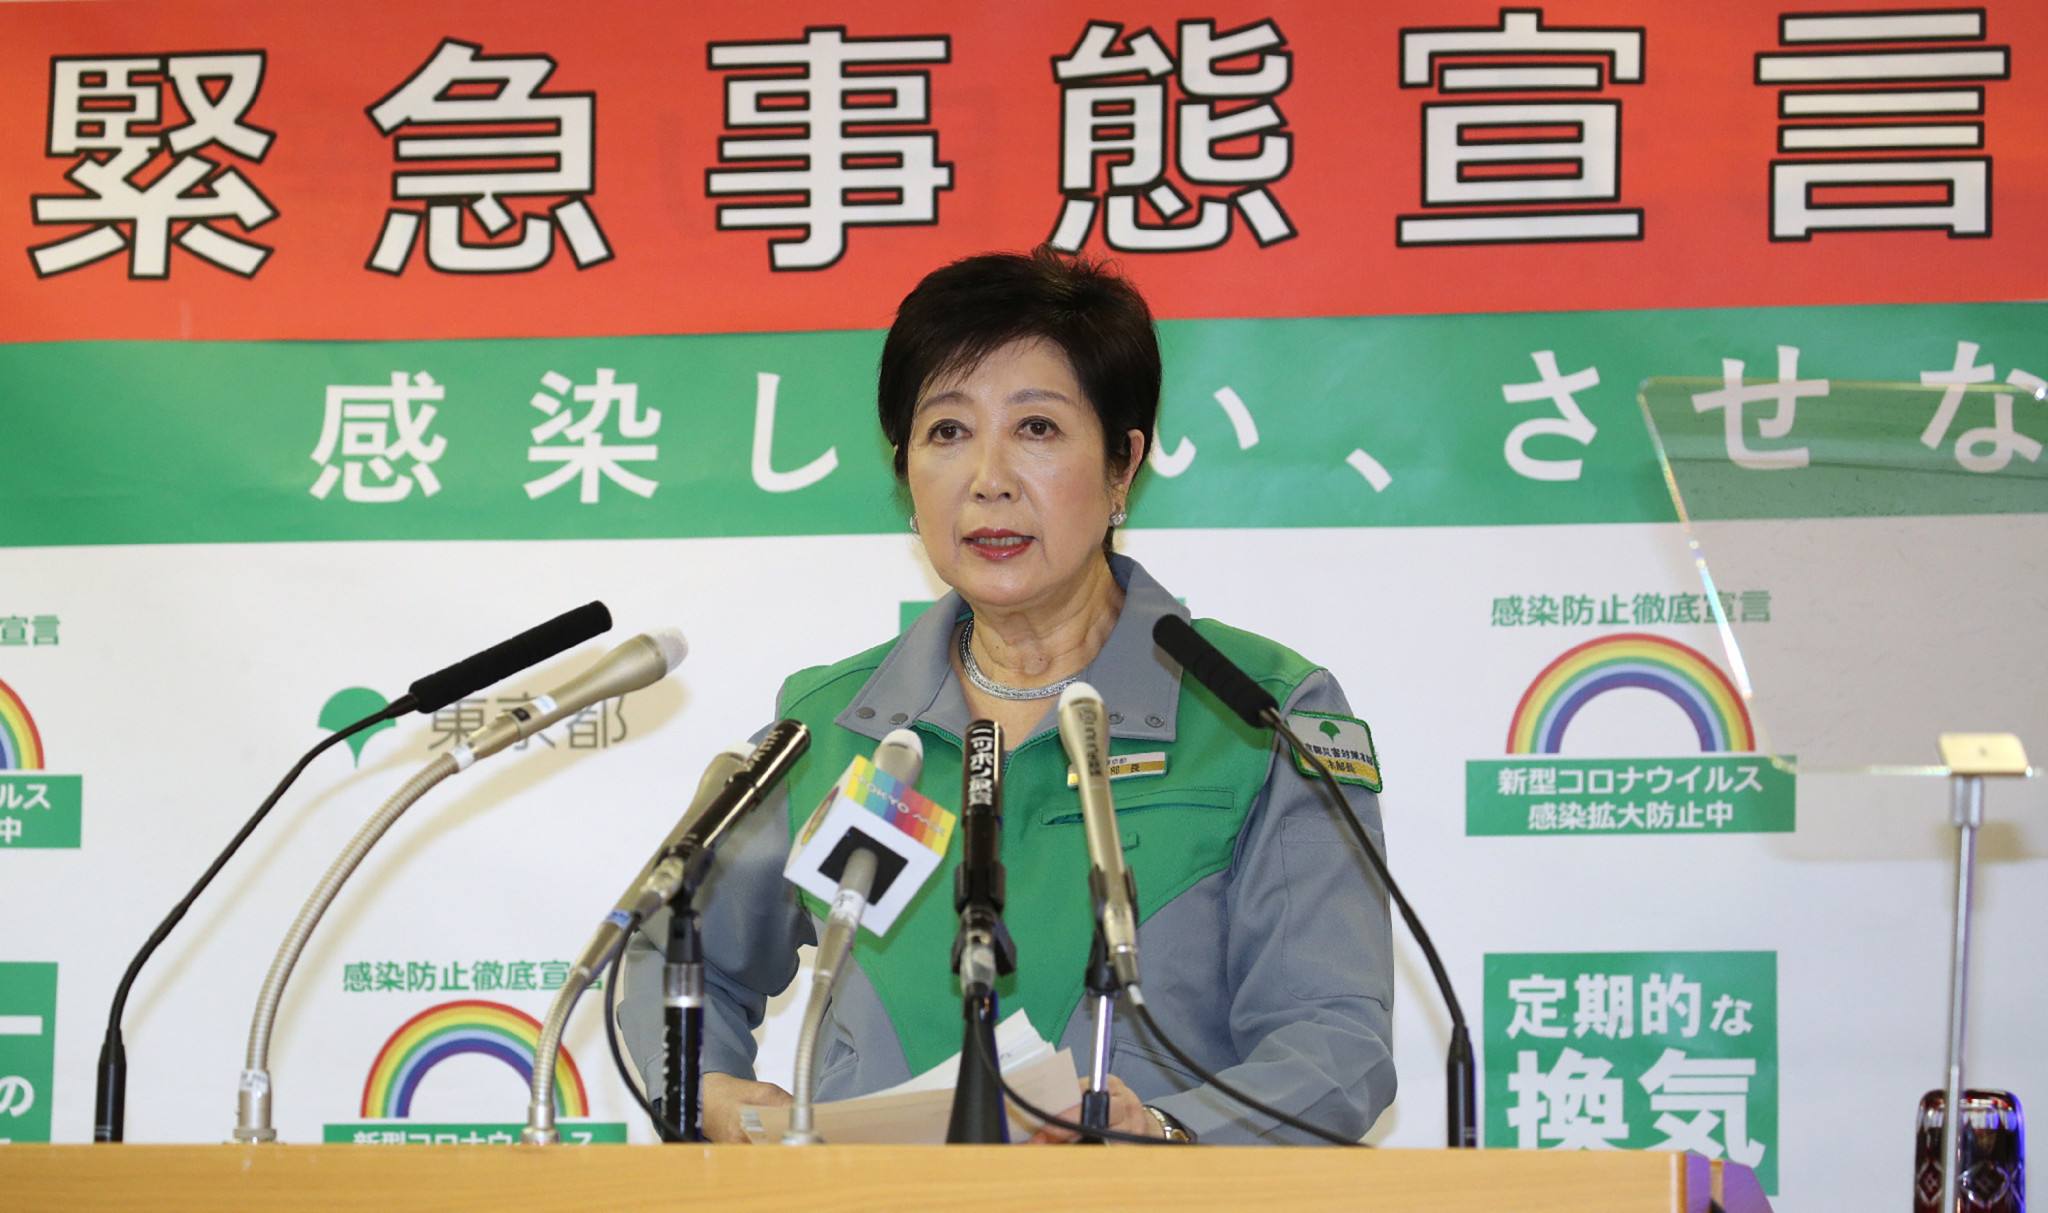 Who is chosen to be the new Tokyo 2020 President